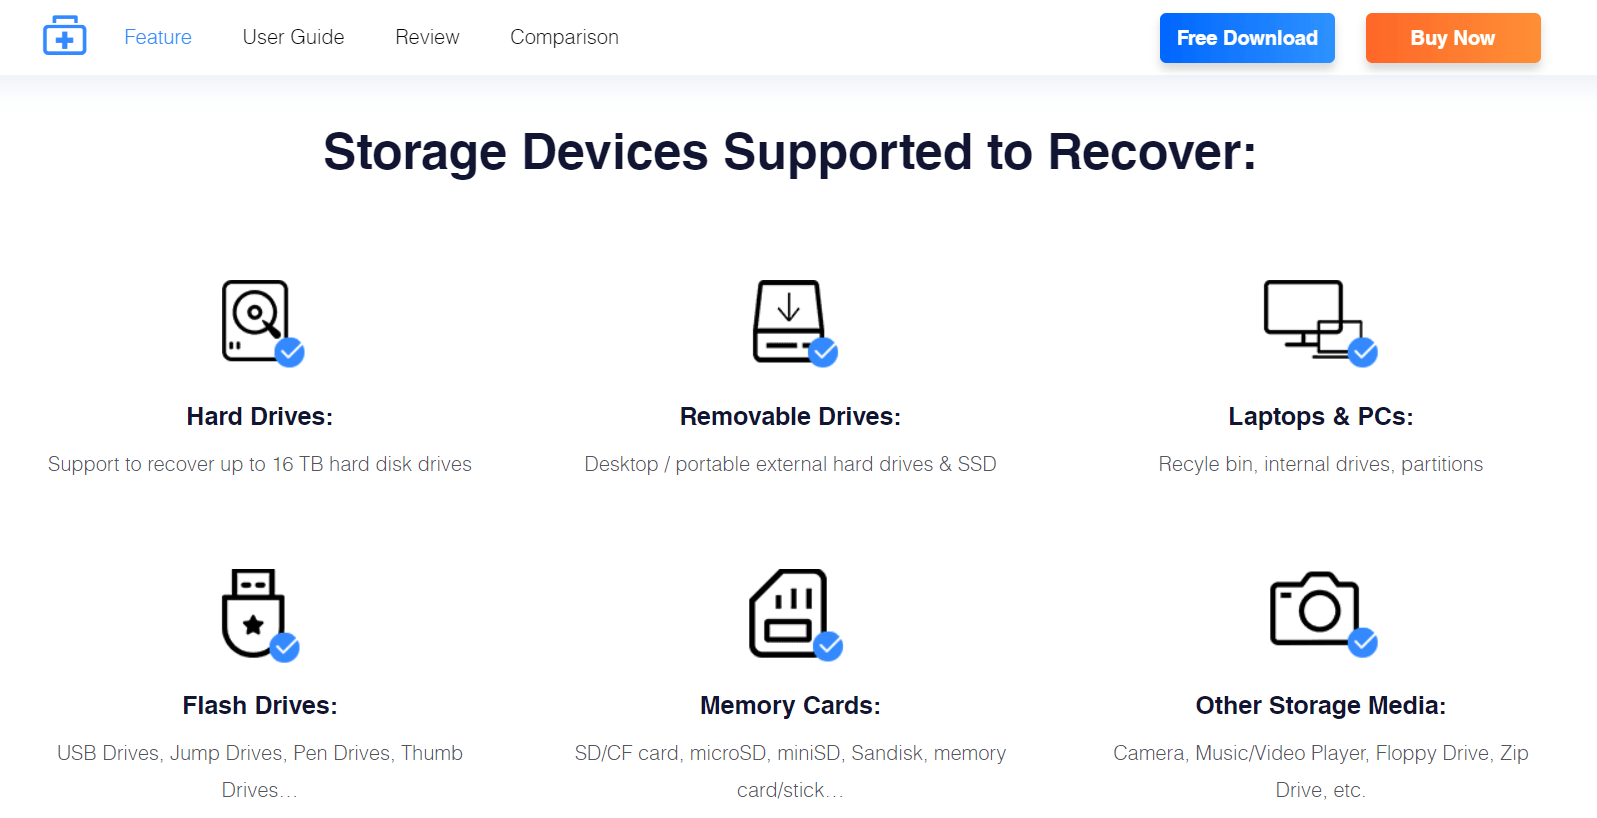 EaseUS Data Recovery Coupon- Storage Devices Supported